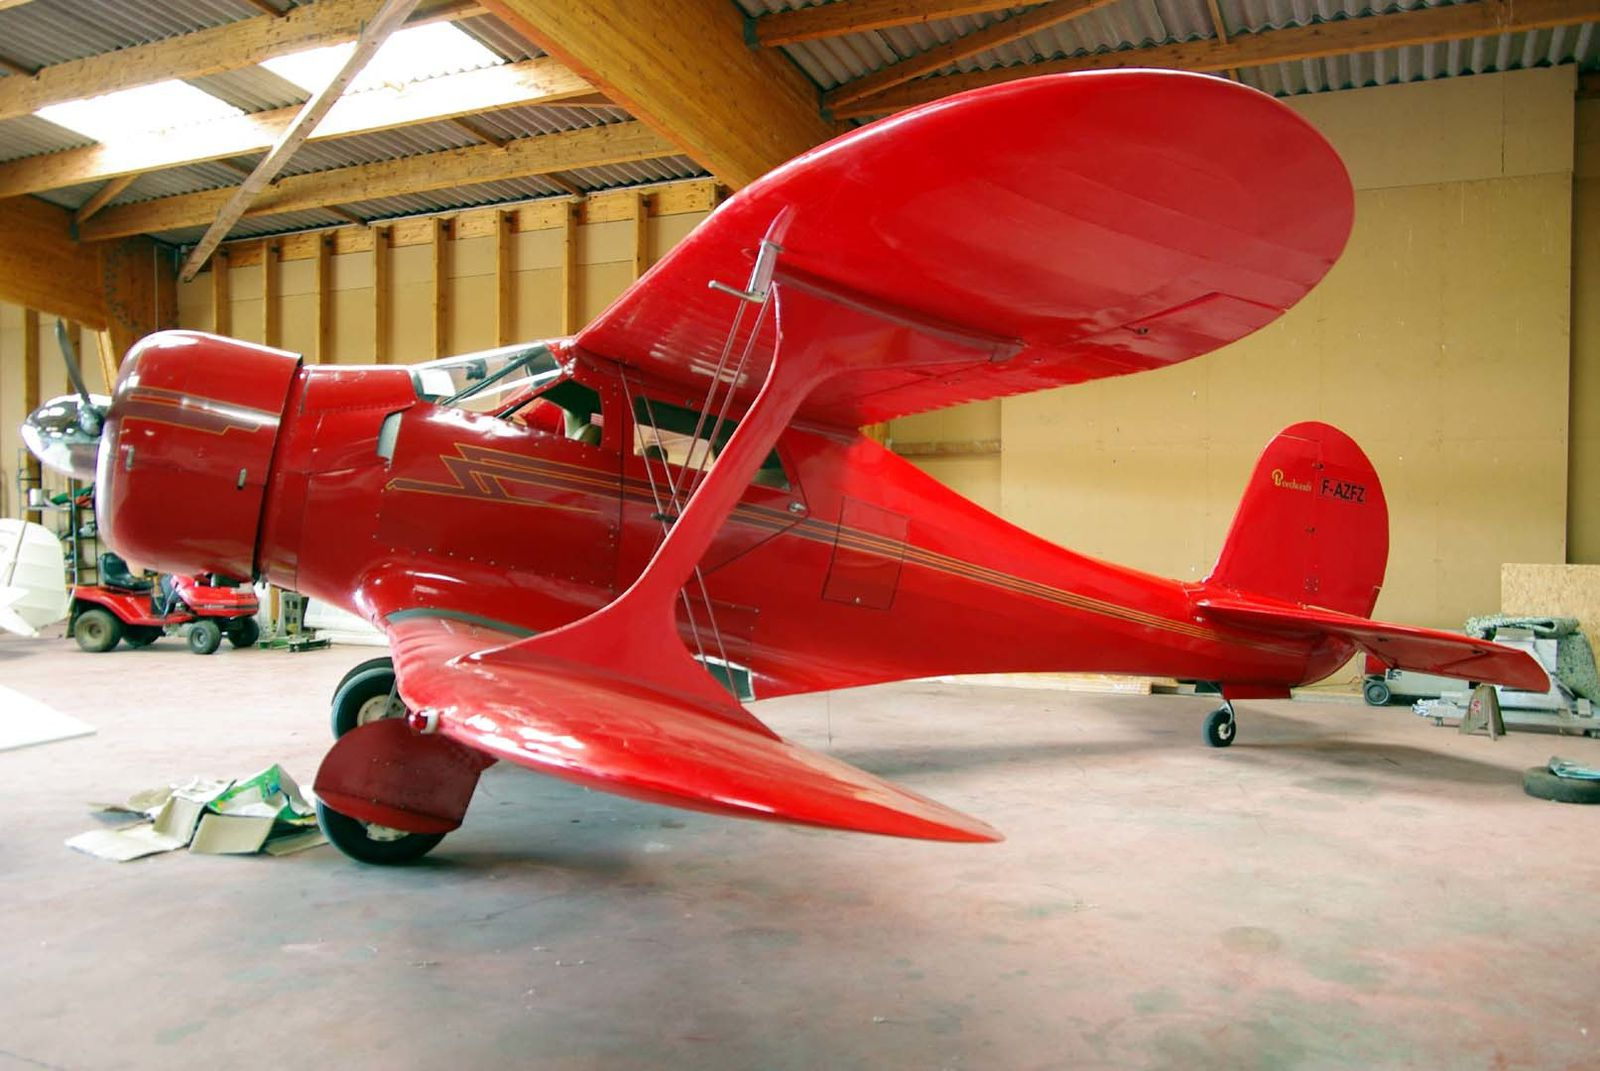 Le Beech 17 Staggerwing F-AZFZ